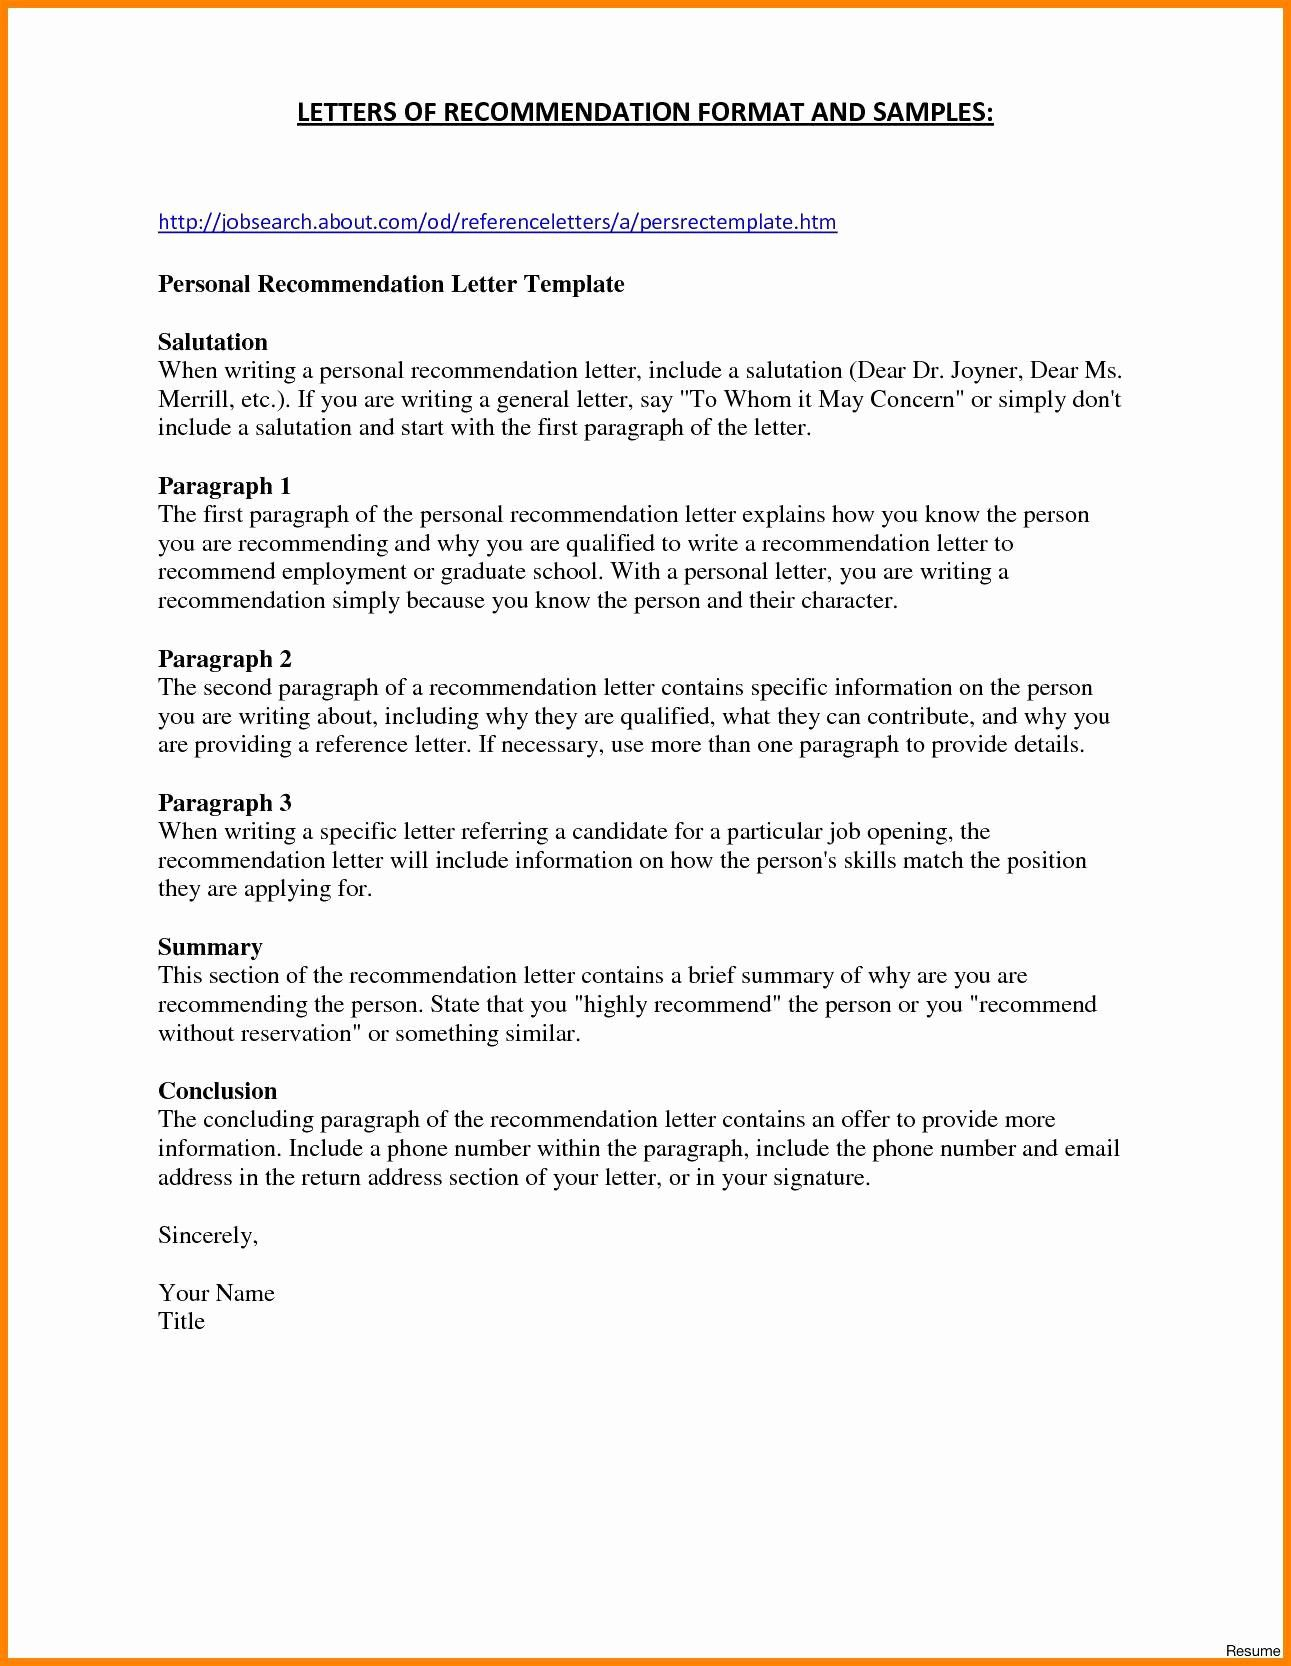 Fax Confidentiality Statement Template Fresh Email Privacy